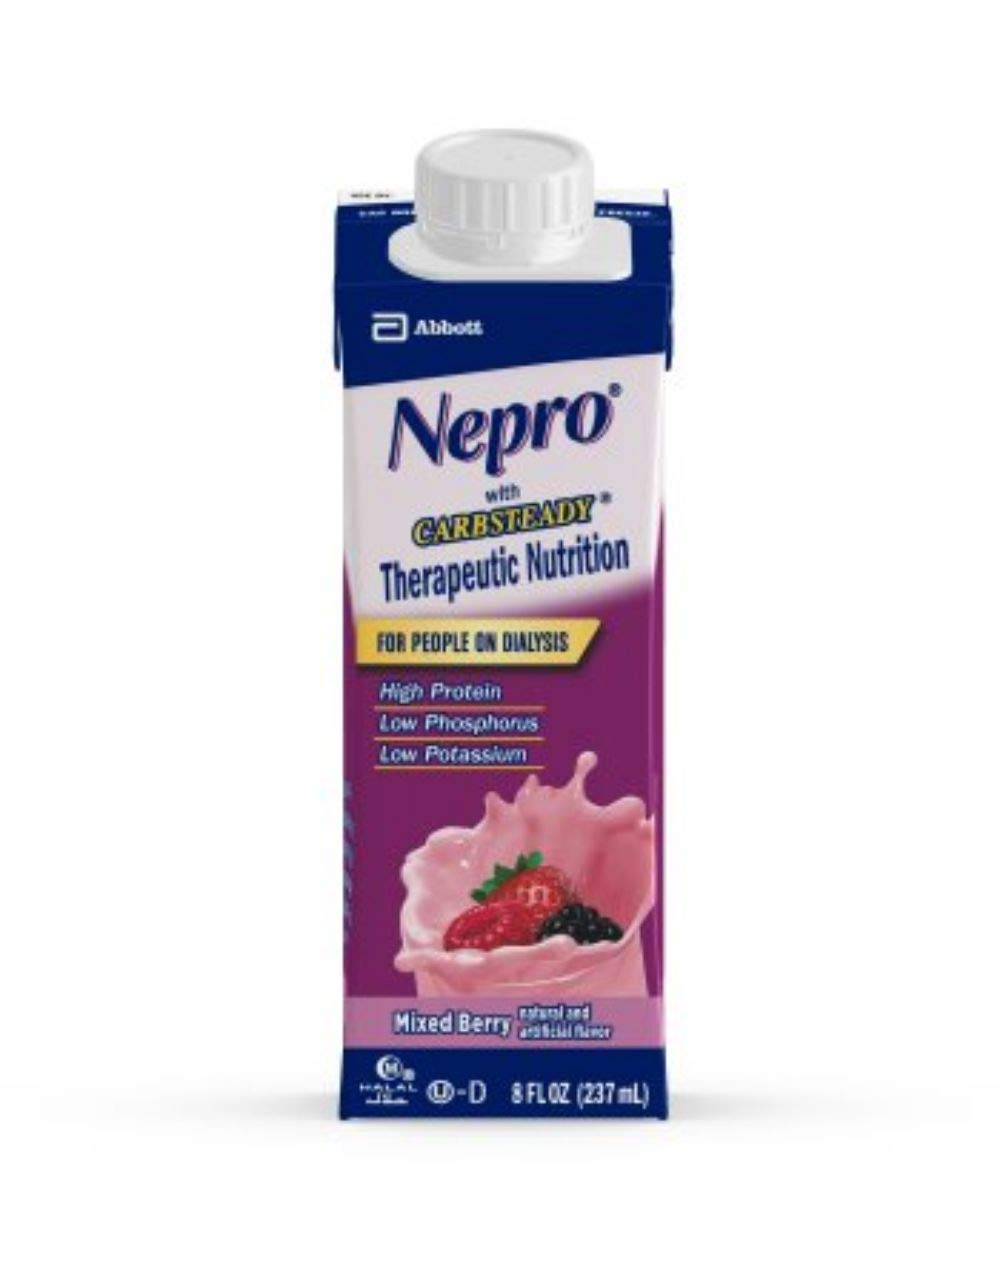 Nepro Complete Nutrition with Carb Steady Mixed Berry Liquid  8oz Reclosable Containers (Case of 24) by Abbott Nutrition (Image #1)